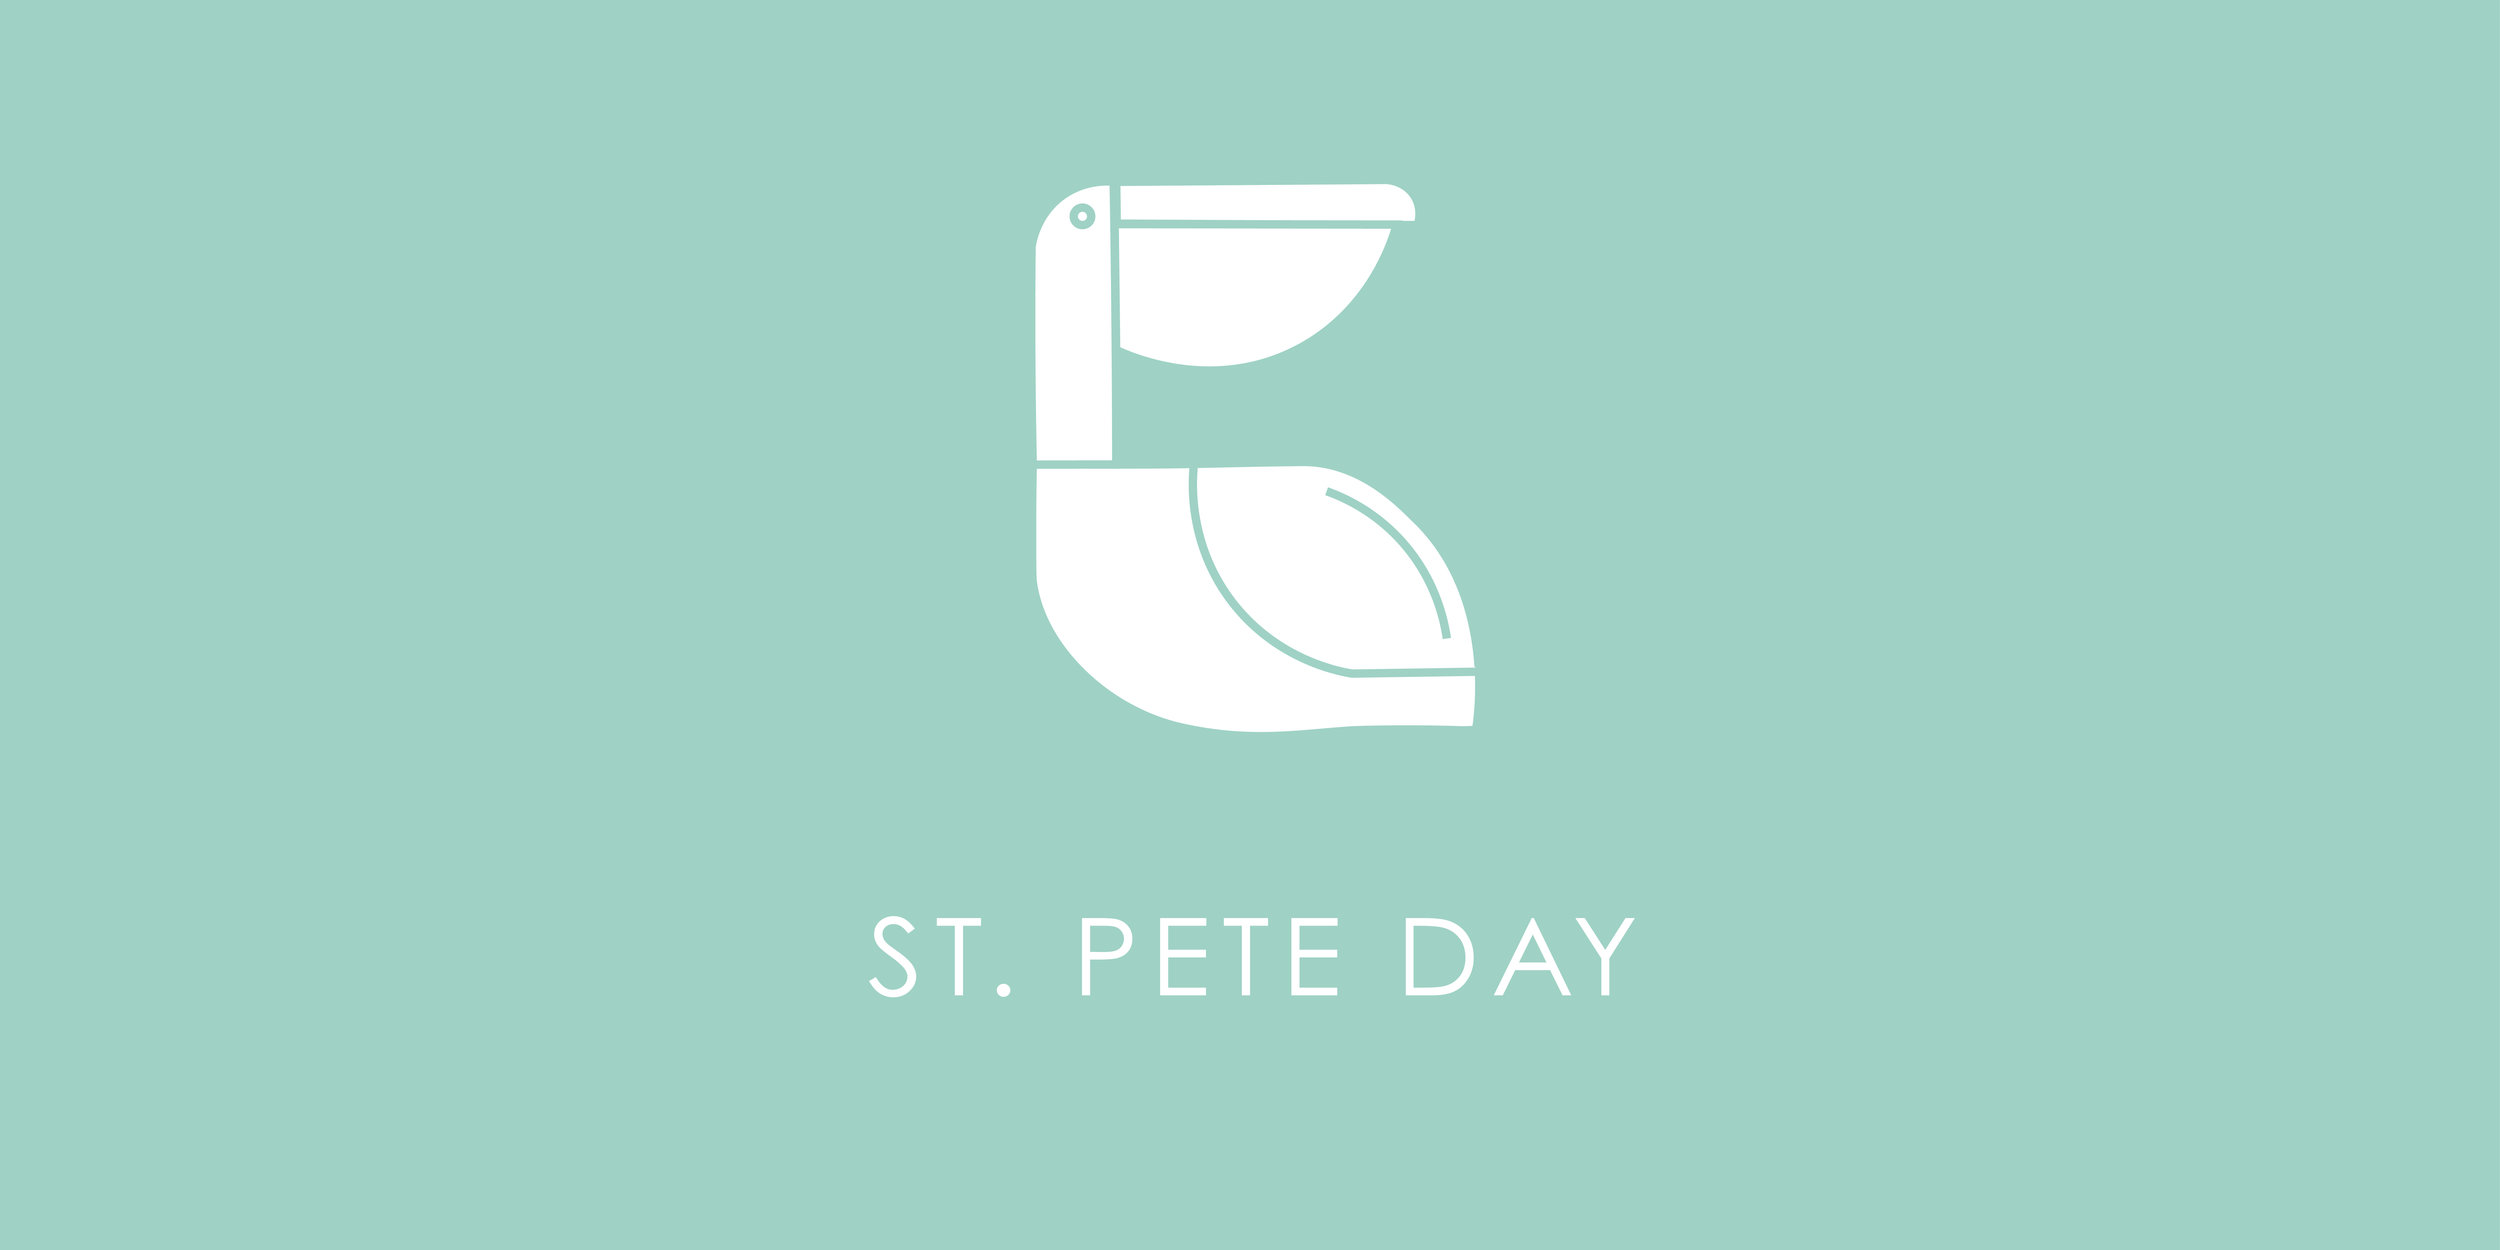 ST. PETE DAY GIFT BOX